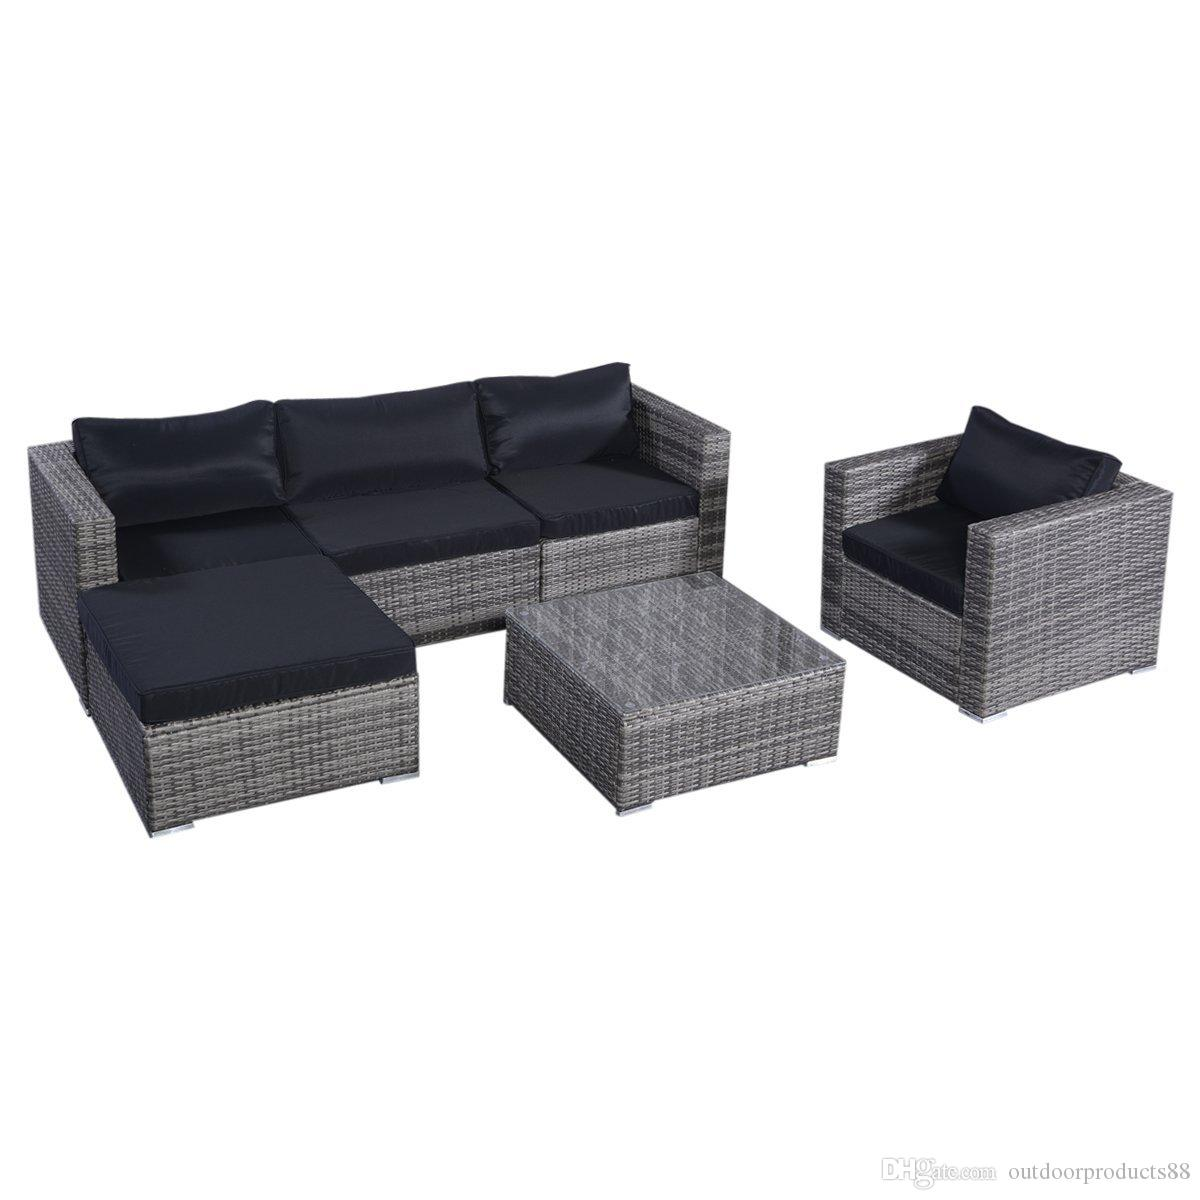 2017 Outdoor Wicker Furniture Set Sofas Ottoman With Cushions Gra nt Gray Outdoor Pe Wicker